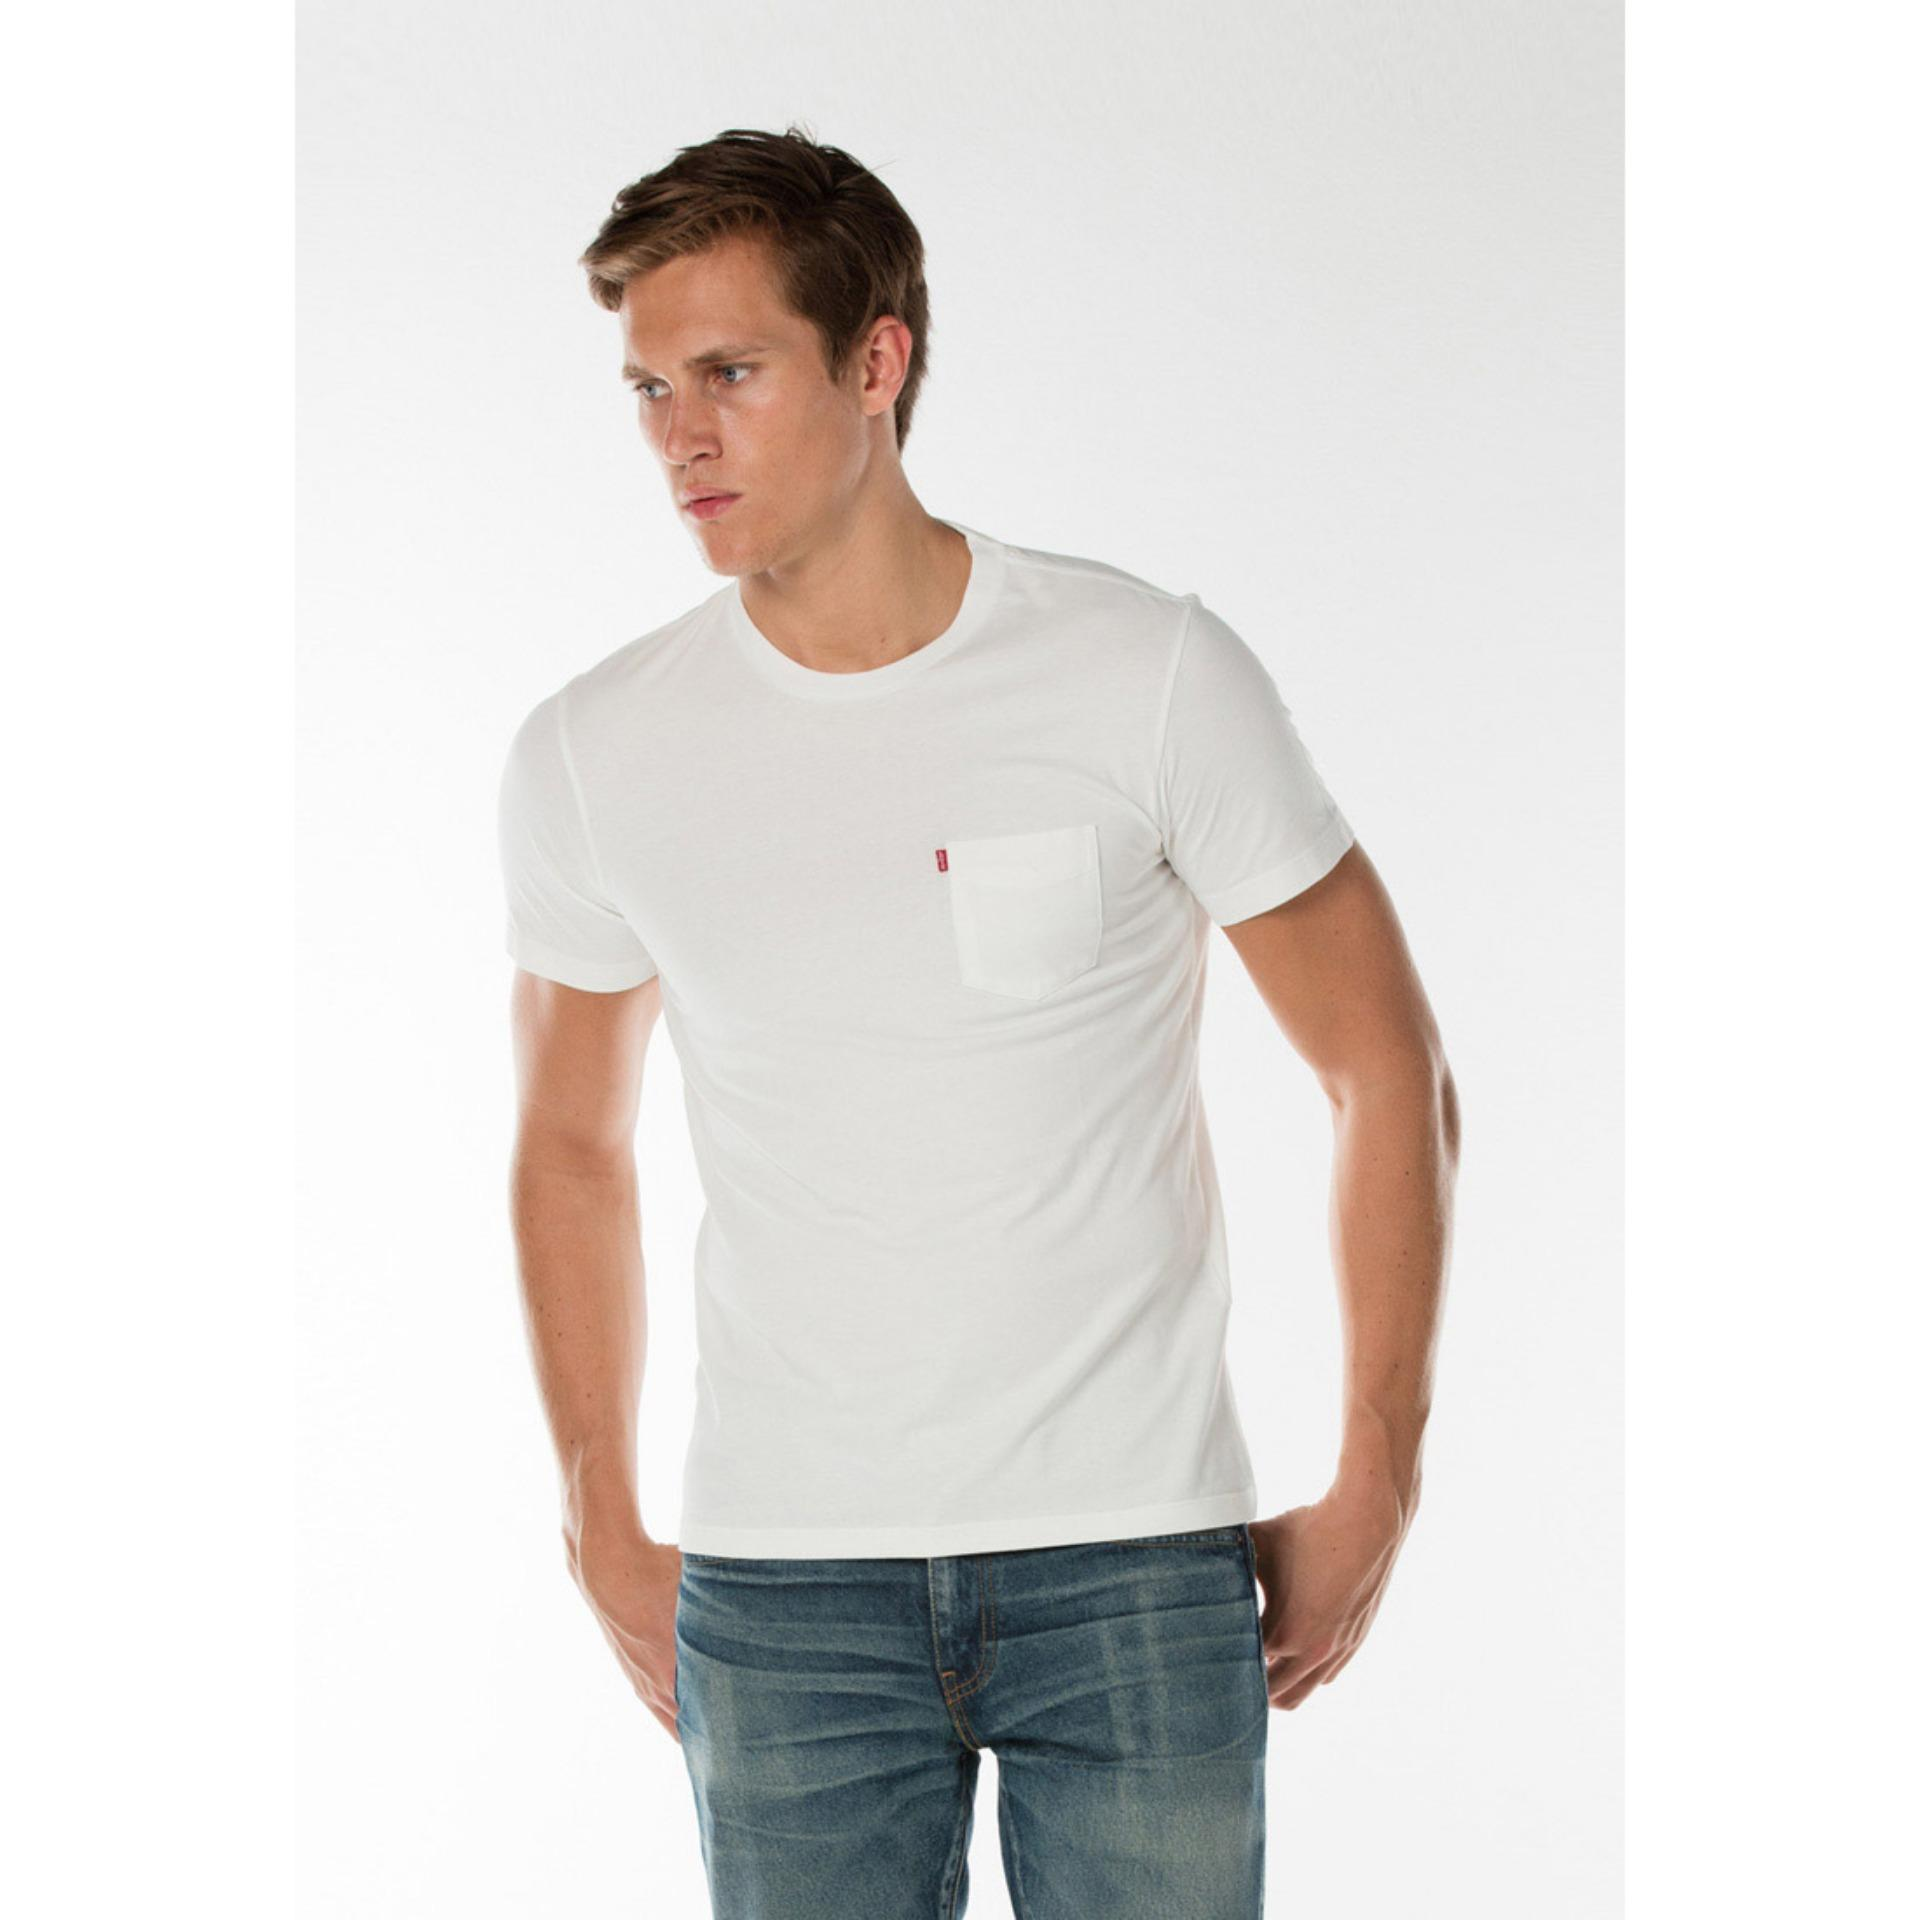 Levi S Sunset Pocket Tee Whitesmoke Promo Beli 1 Gratis 1